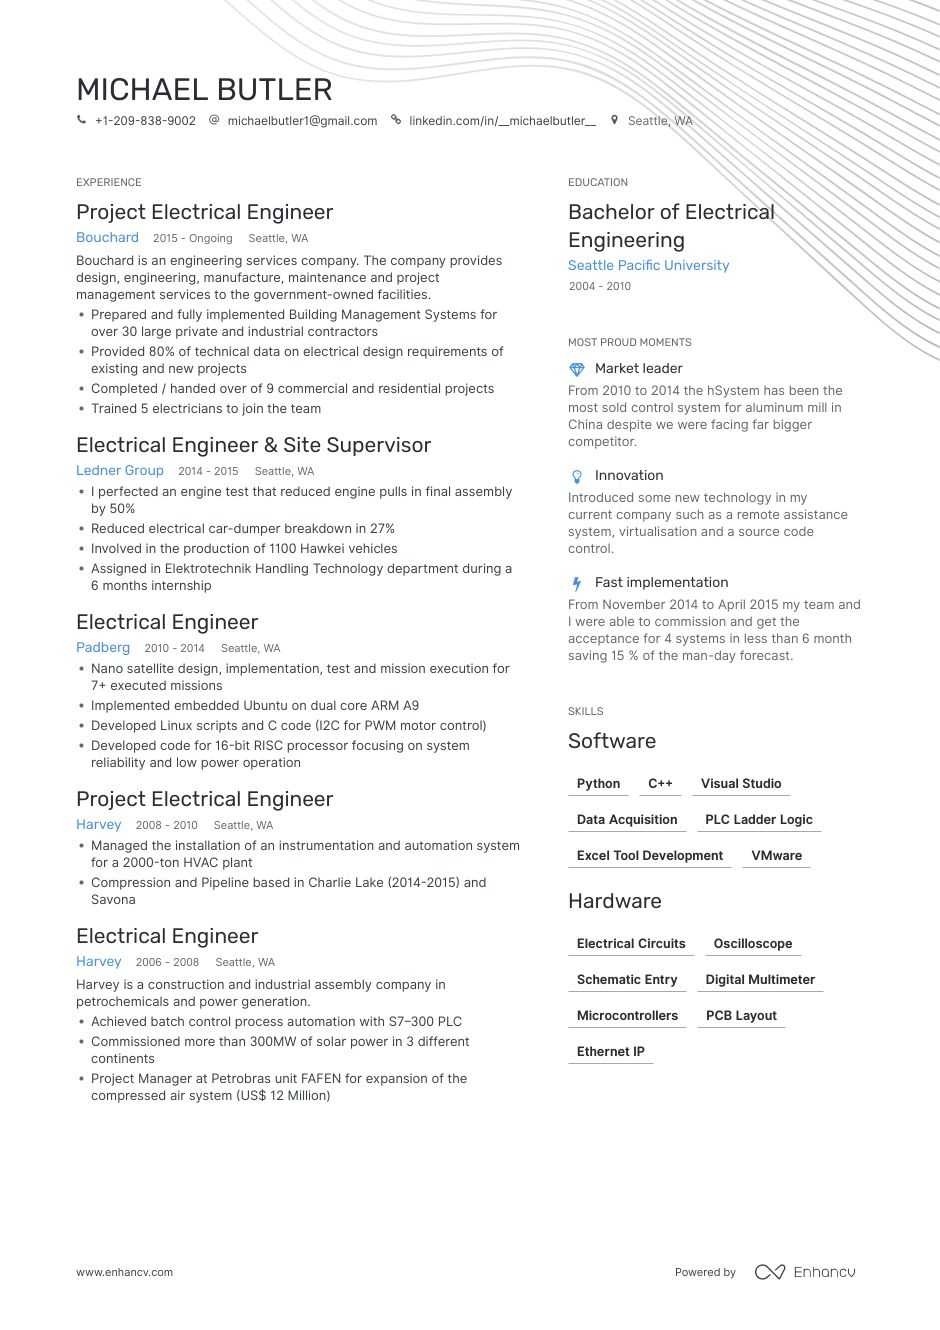 electrical engineer resume examples pro tips featured enhancv strength of student for Resume Strength Of Student For Resume